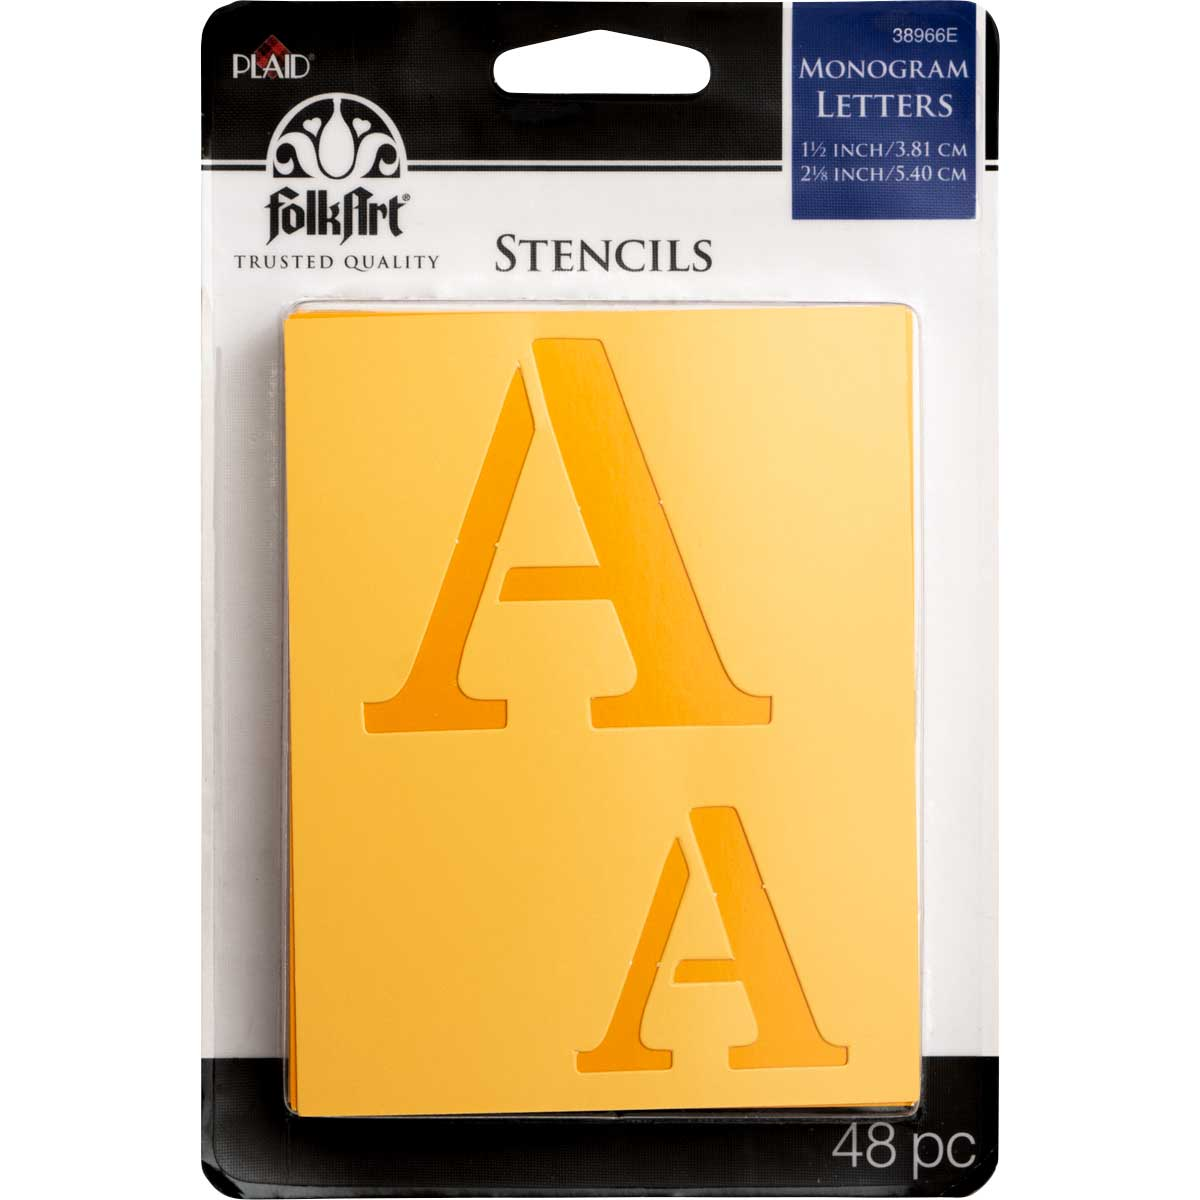 FolkArt ® Stencil Value Packs - Letter Stencils - Monogram - 38966E